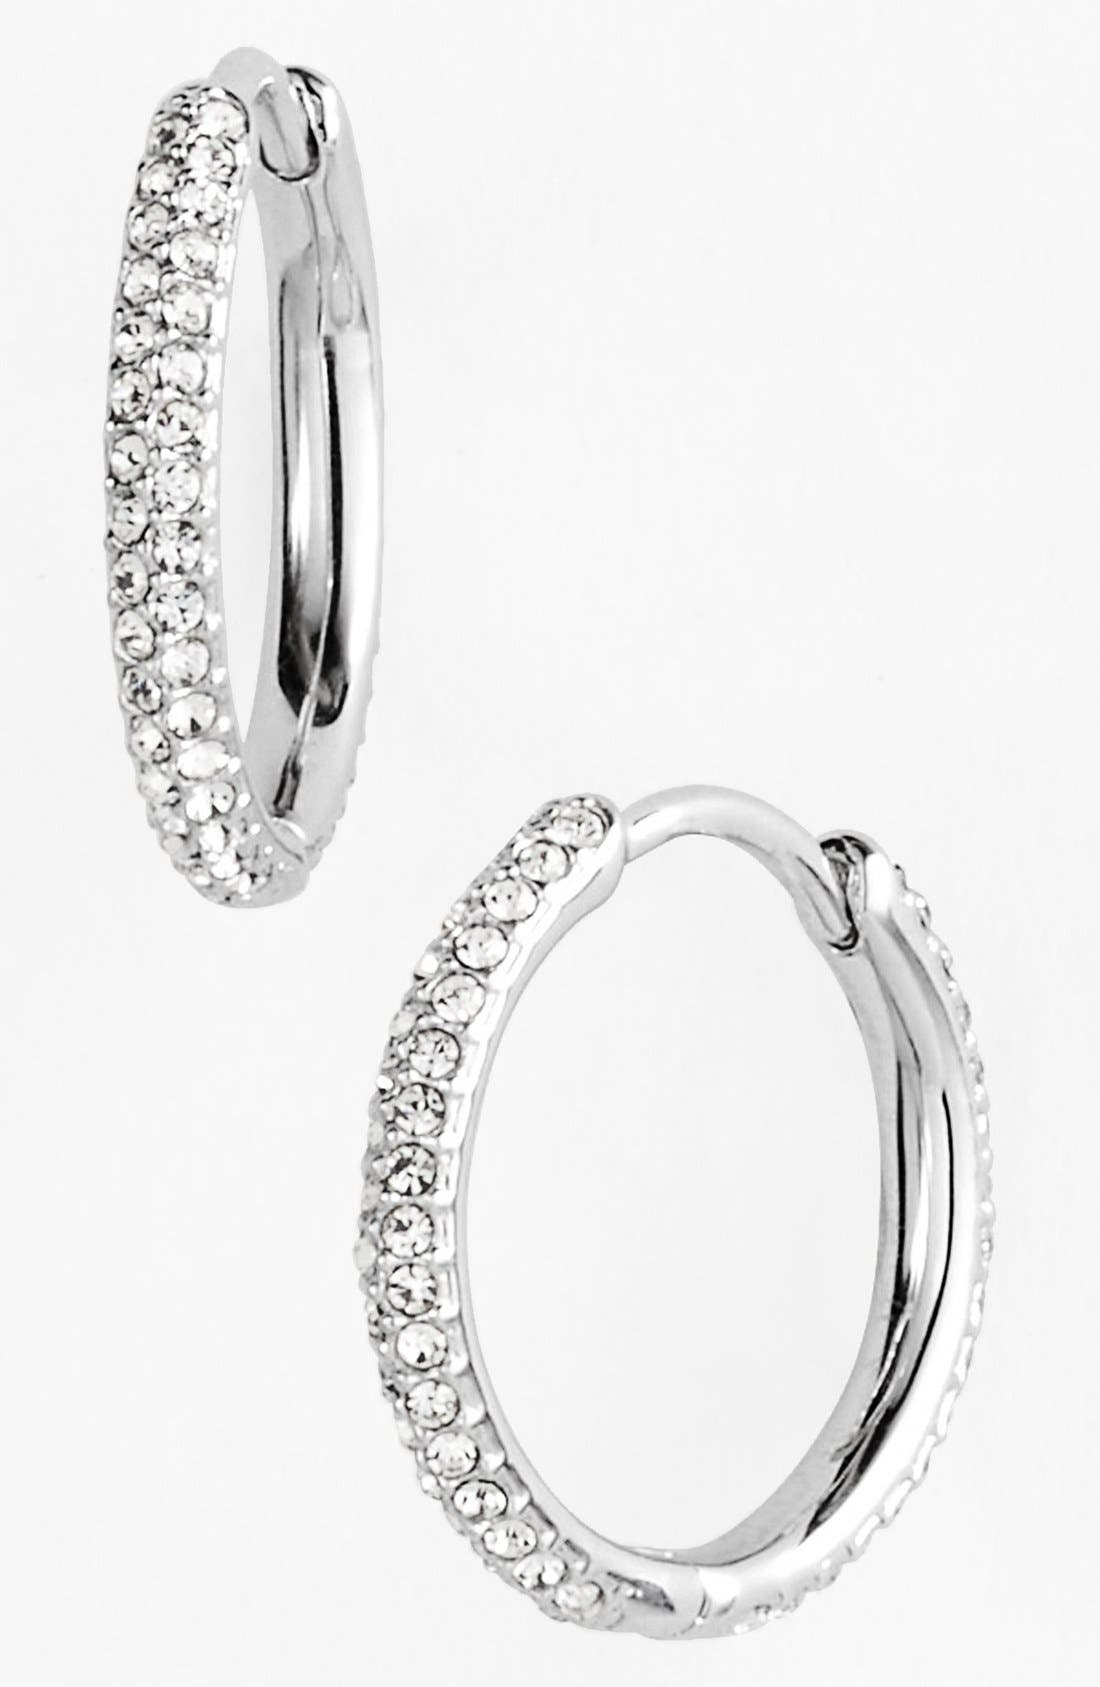 Alternate Image 1 Selected - Nadri Small Pavé Hoop Earrings (Nordstrom Exclusive)